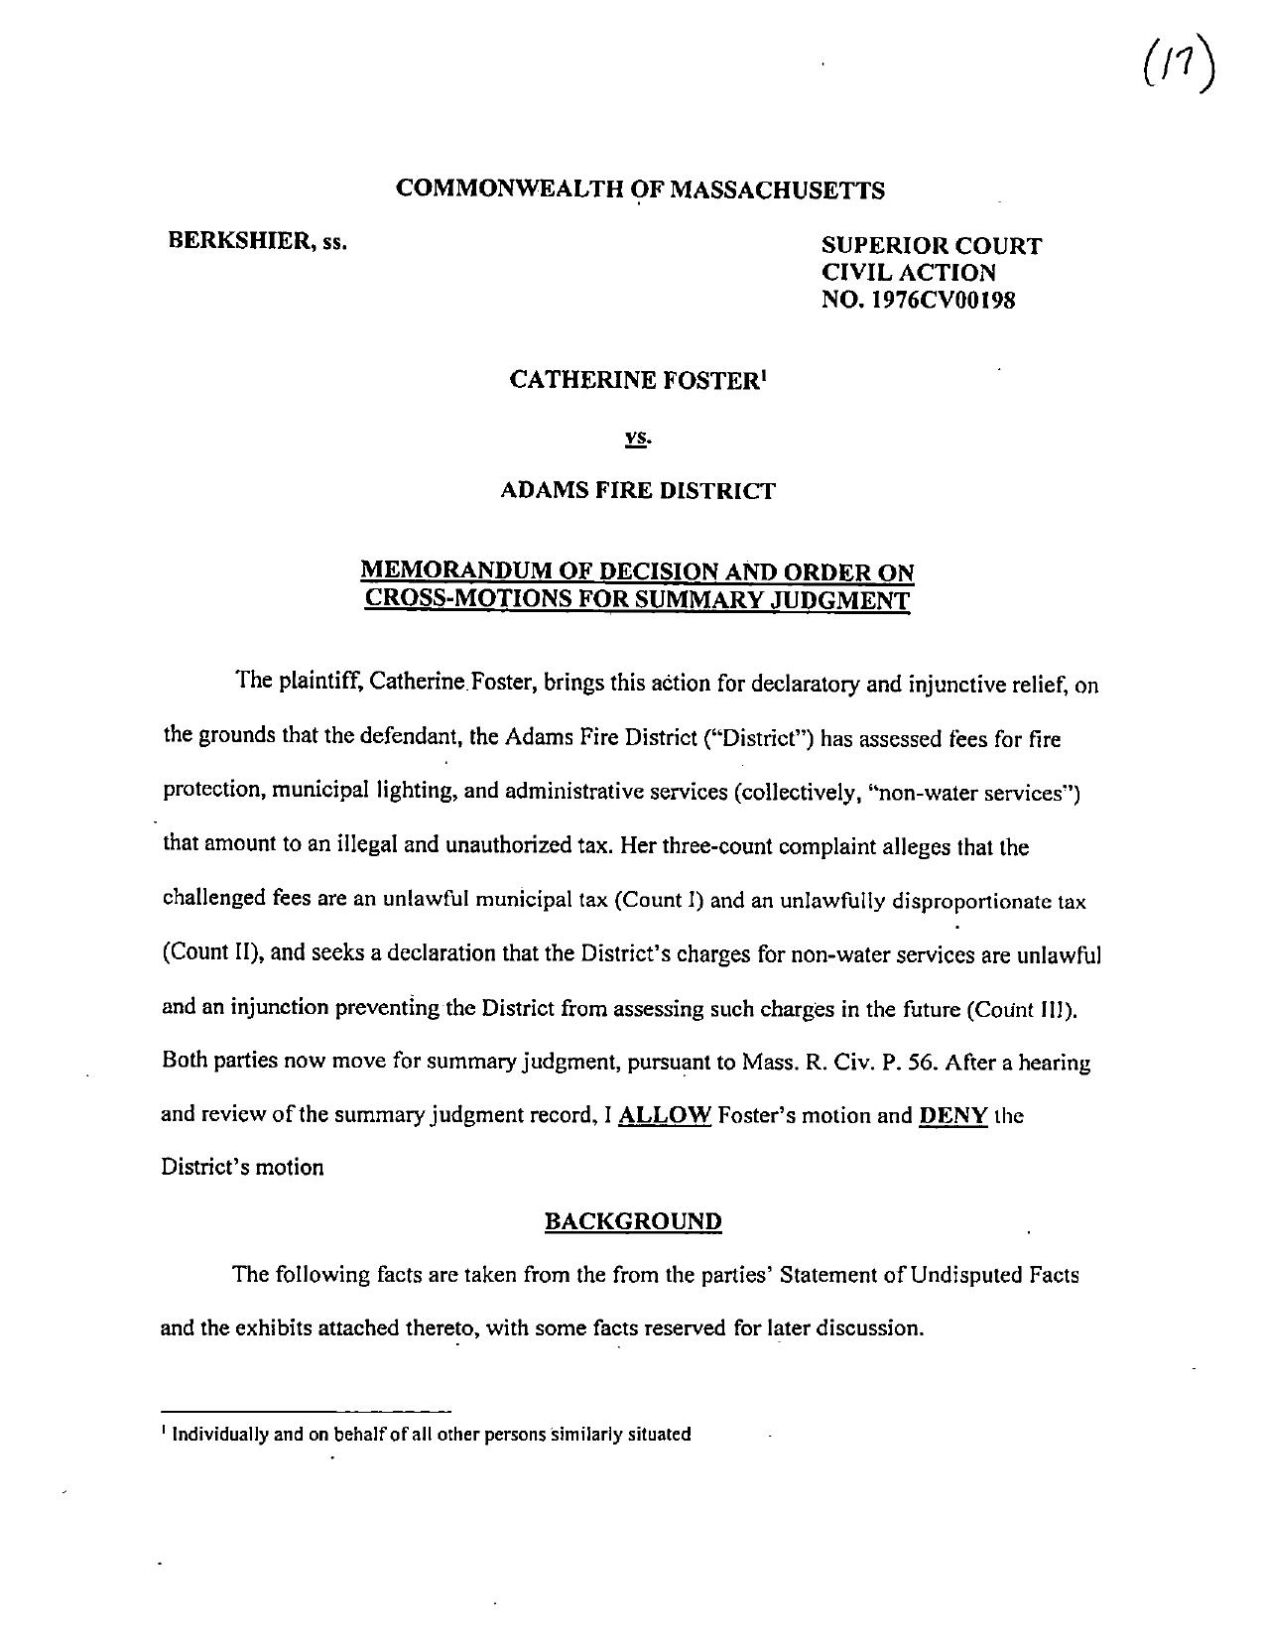 Decision in Catherine Foster vs. Adams Fire District